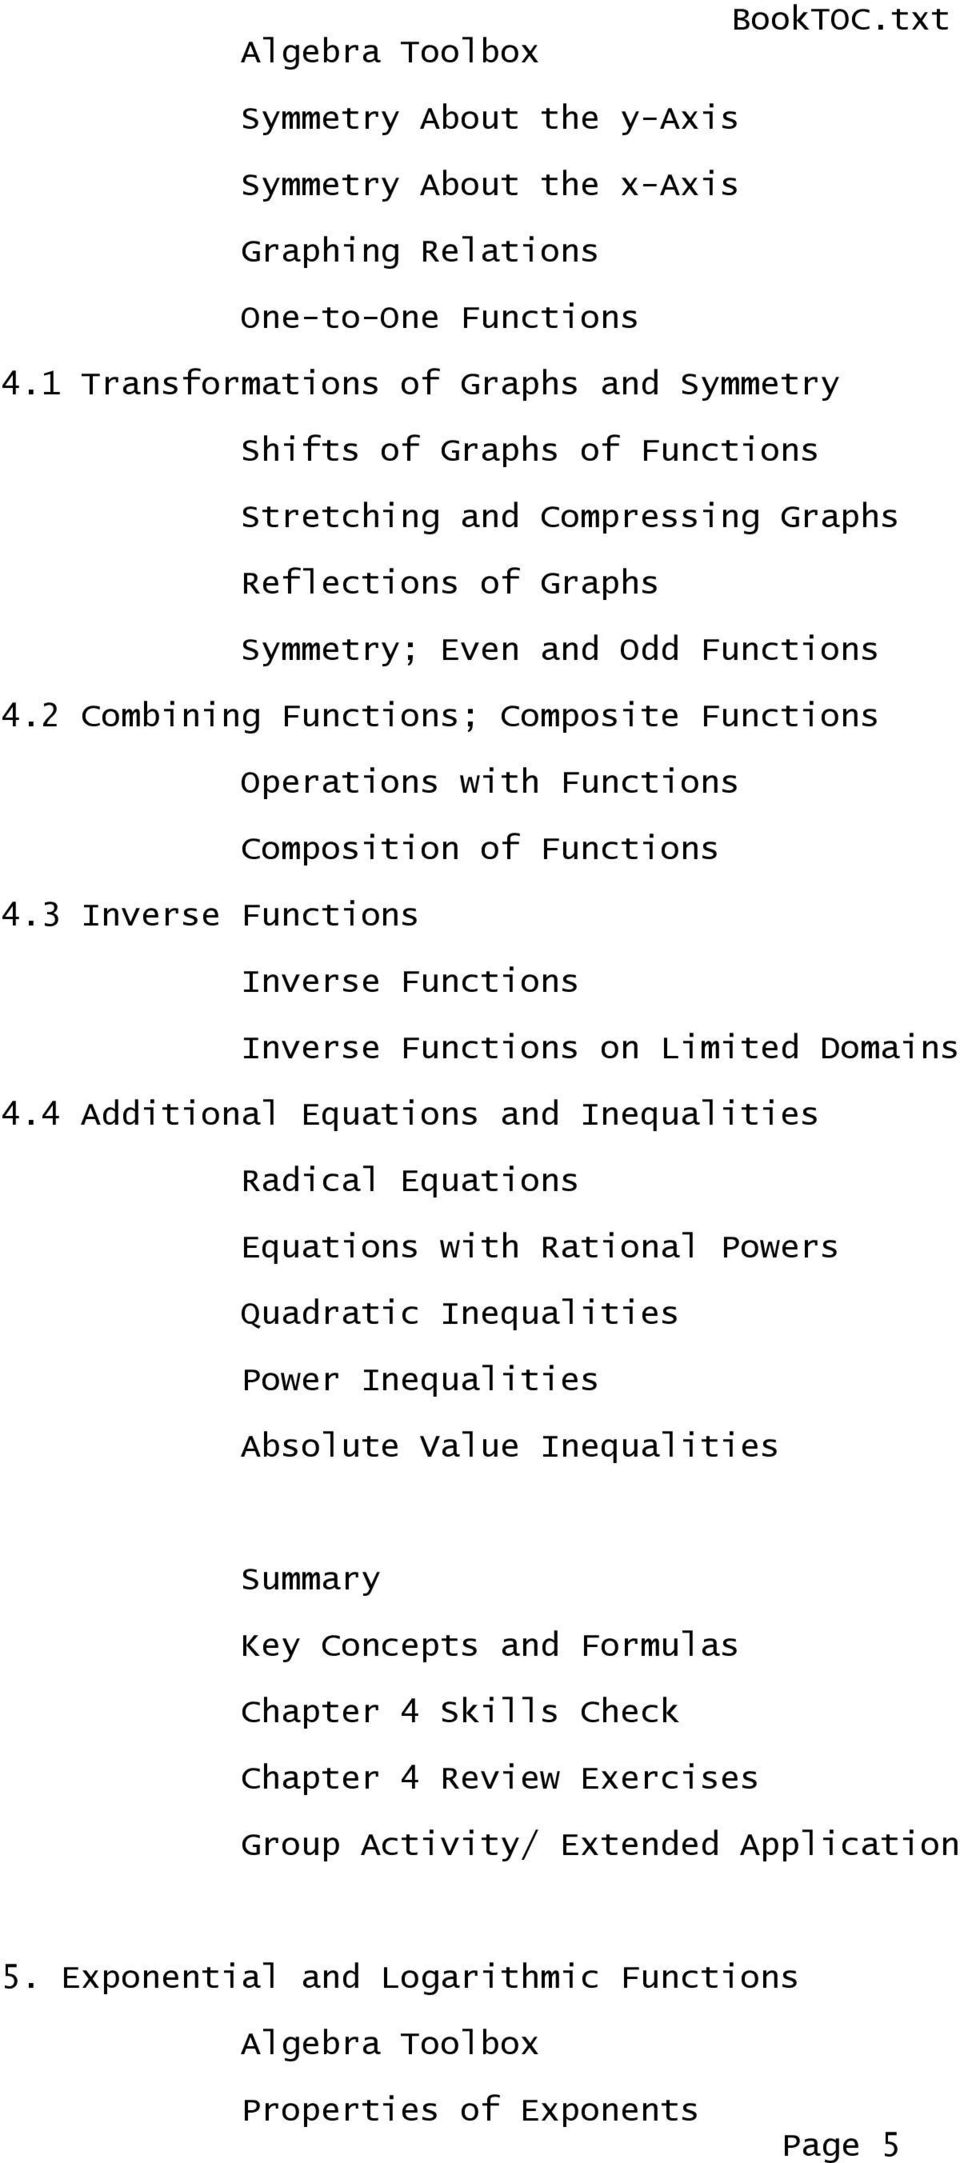 2 Combining Functions; Composite Functions Operations with Functions Composition of Functions 4.3 Inverse Functions Inverse Functions Inverse Functions on Limited Domains 4.